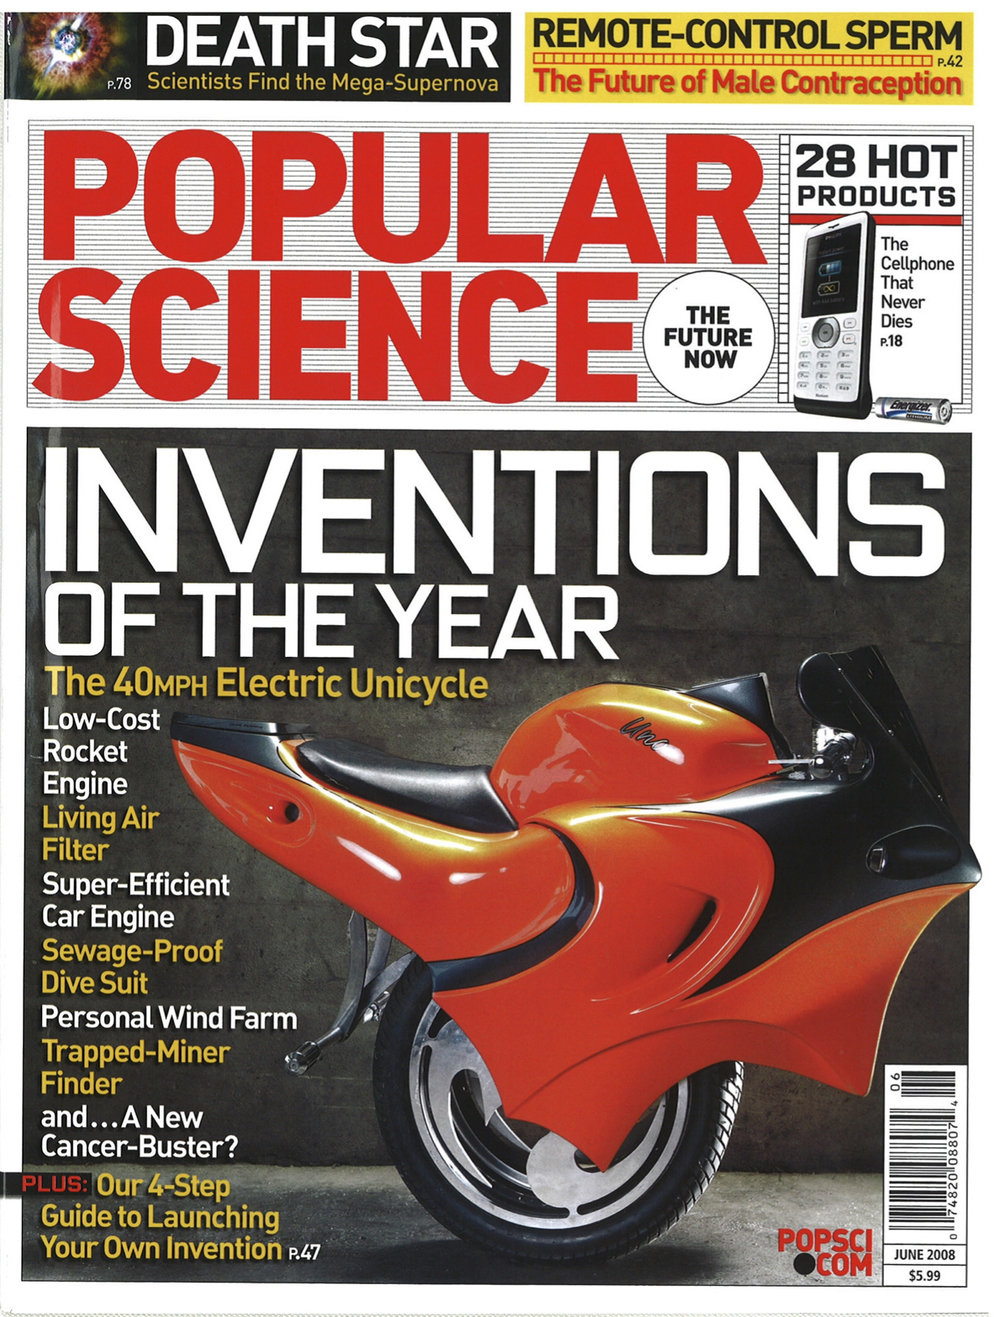 Popular Science June 2008 Cover.jpg